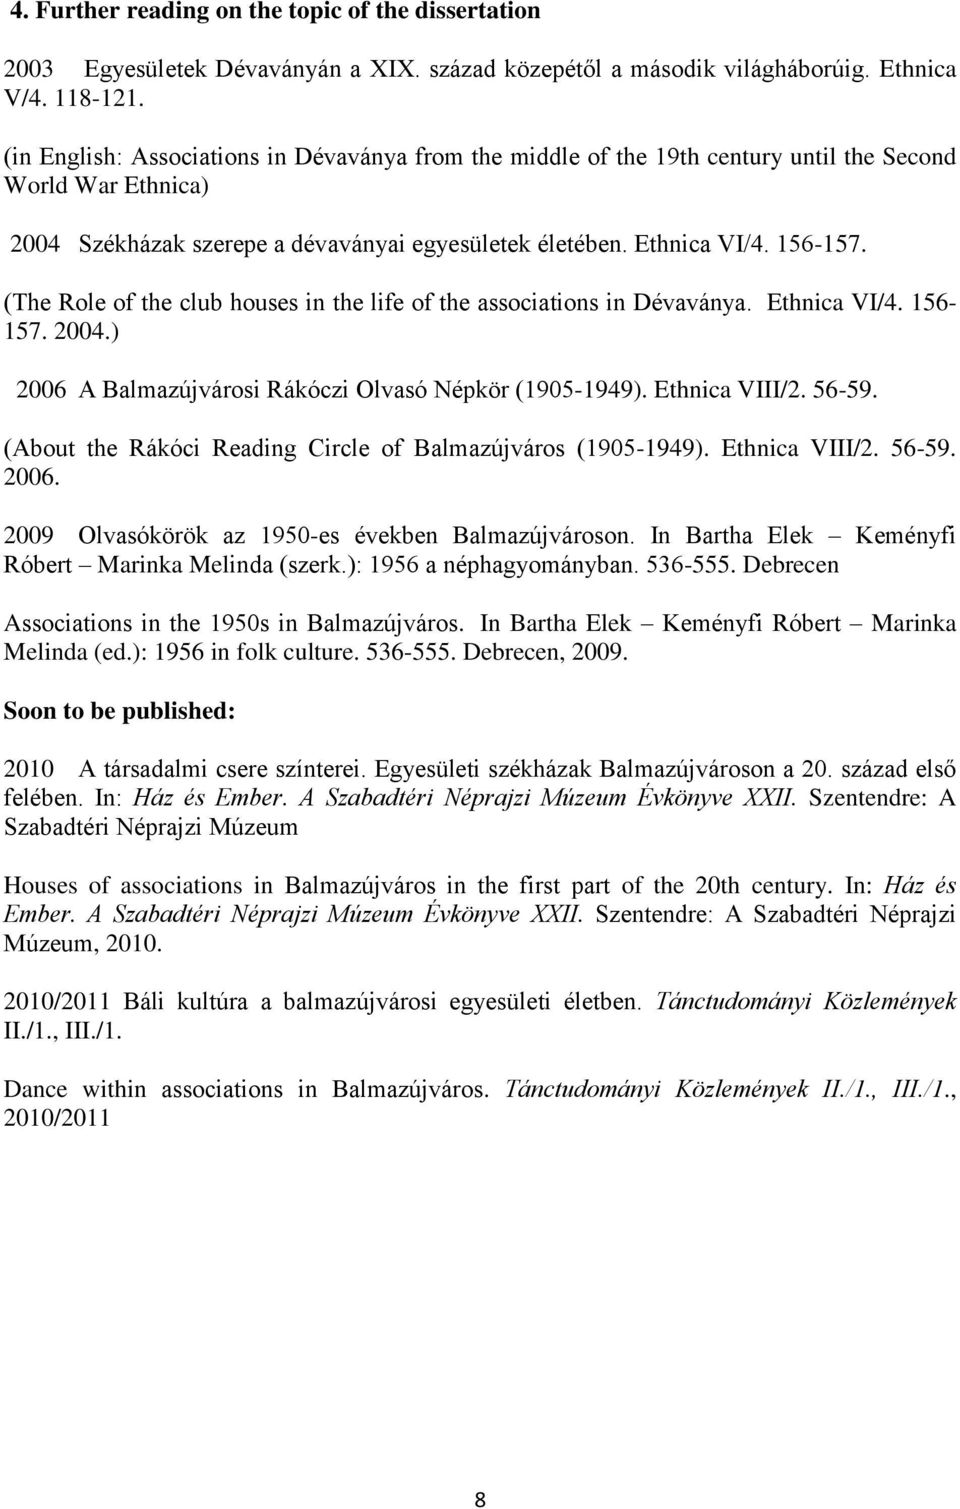 (The Role of the club houses in the life of the associations in Dévaványa. Ethnica VI/4. 156-157. 2004.) 2006 A Balmazújvárosi Rákóczi Olvasó Népkör (1905-1949). Ethnica VIII/2. 56-59.